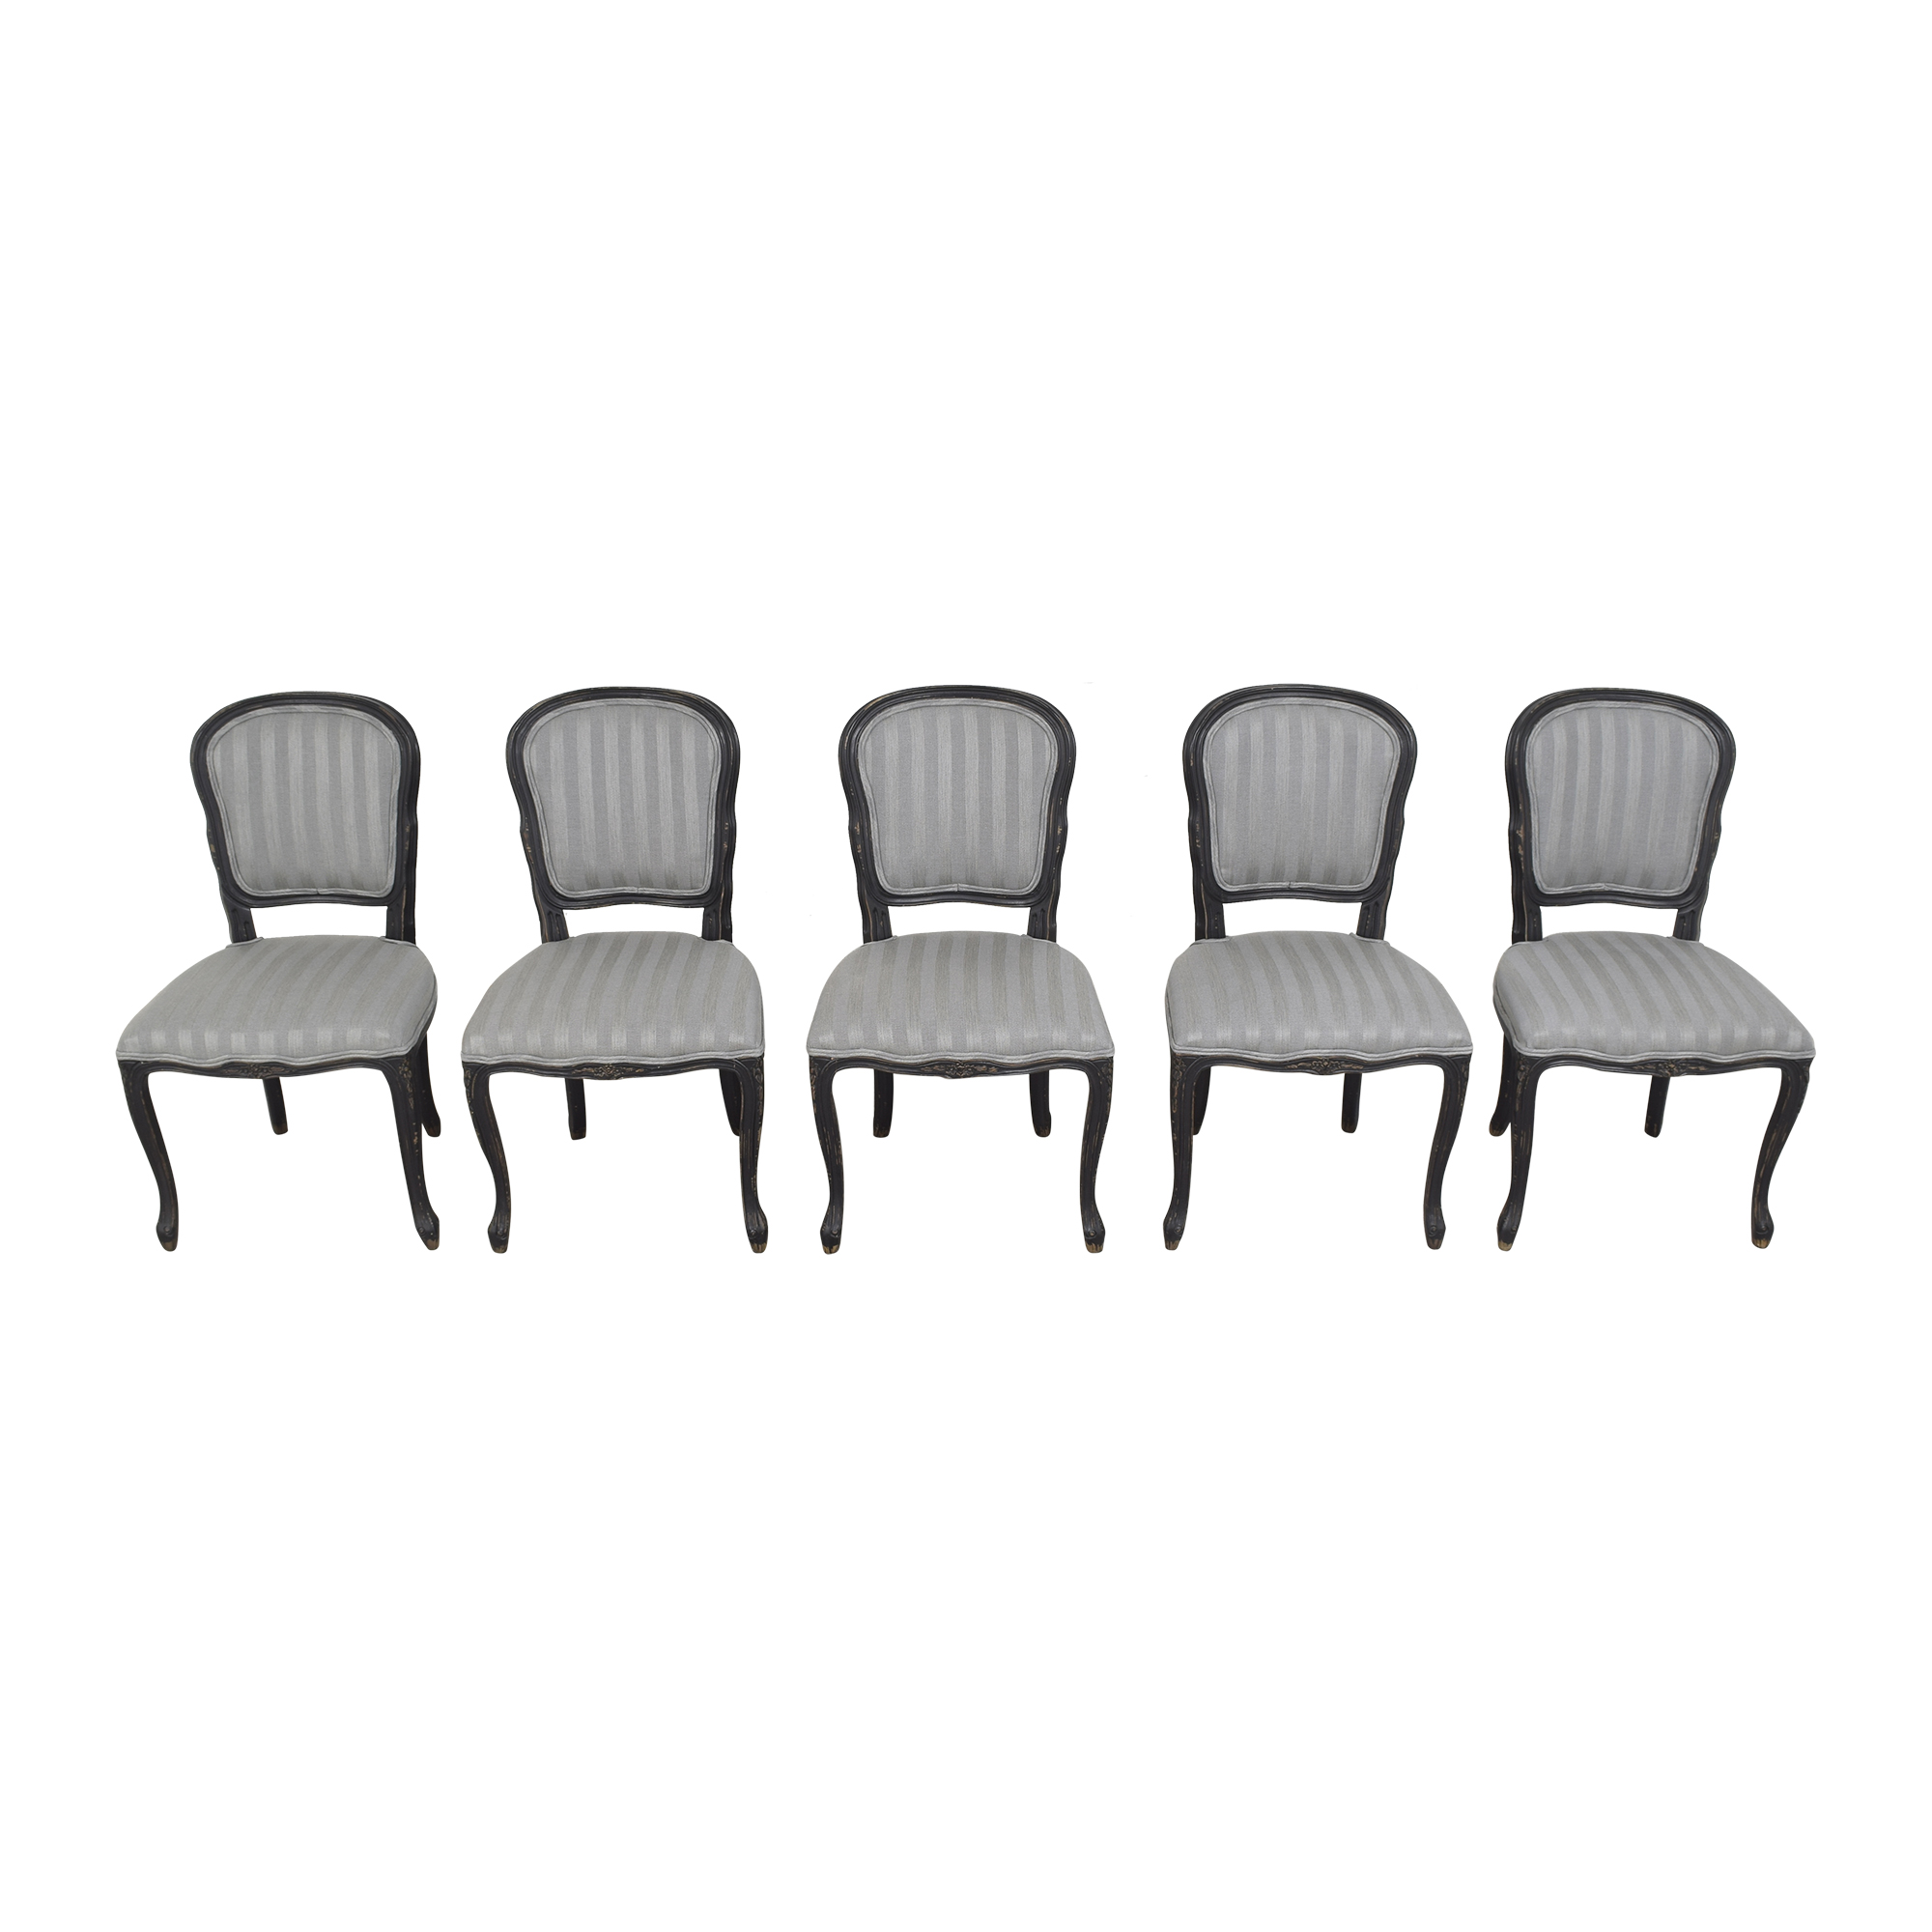 shop Four Hands Four Hands Orleans Dining Chairs online